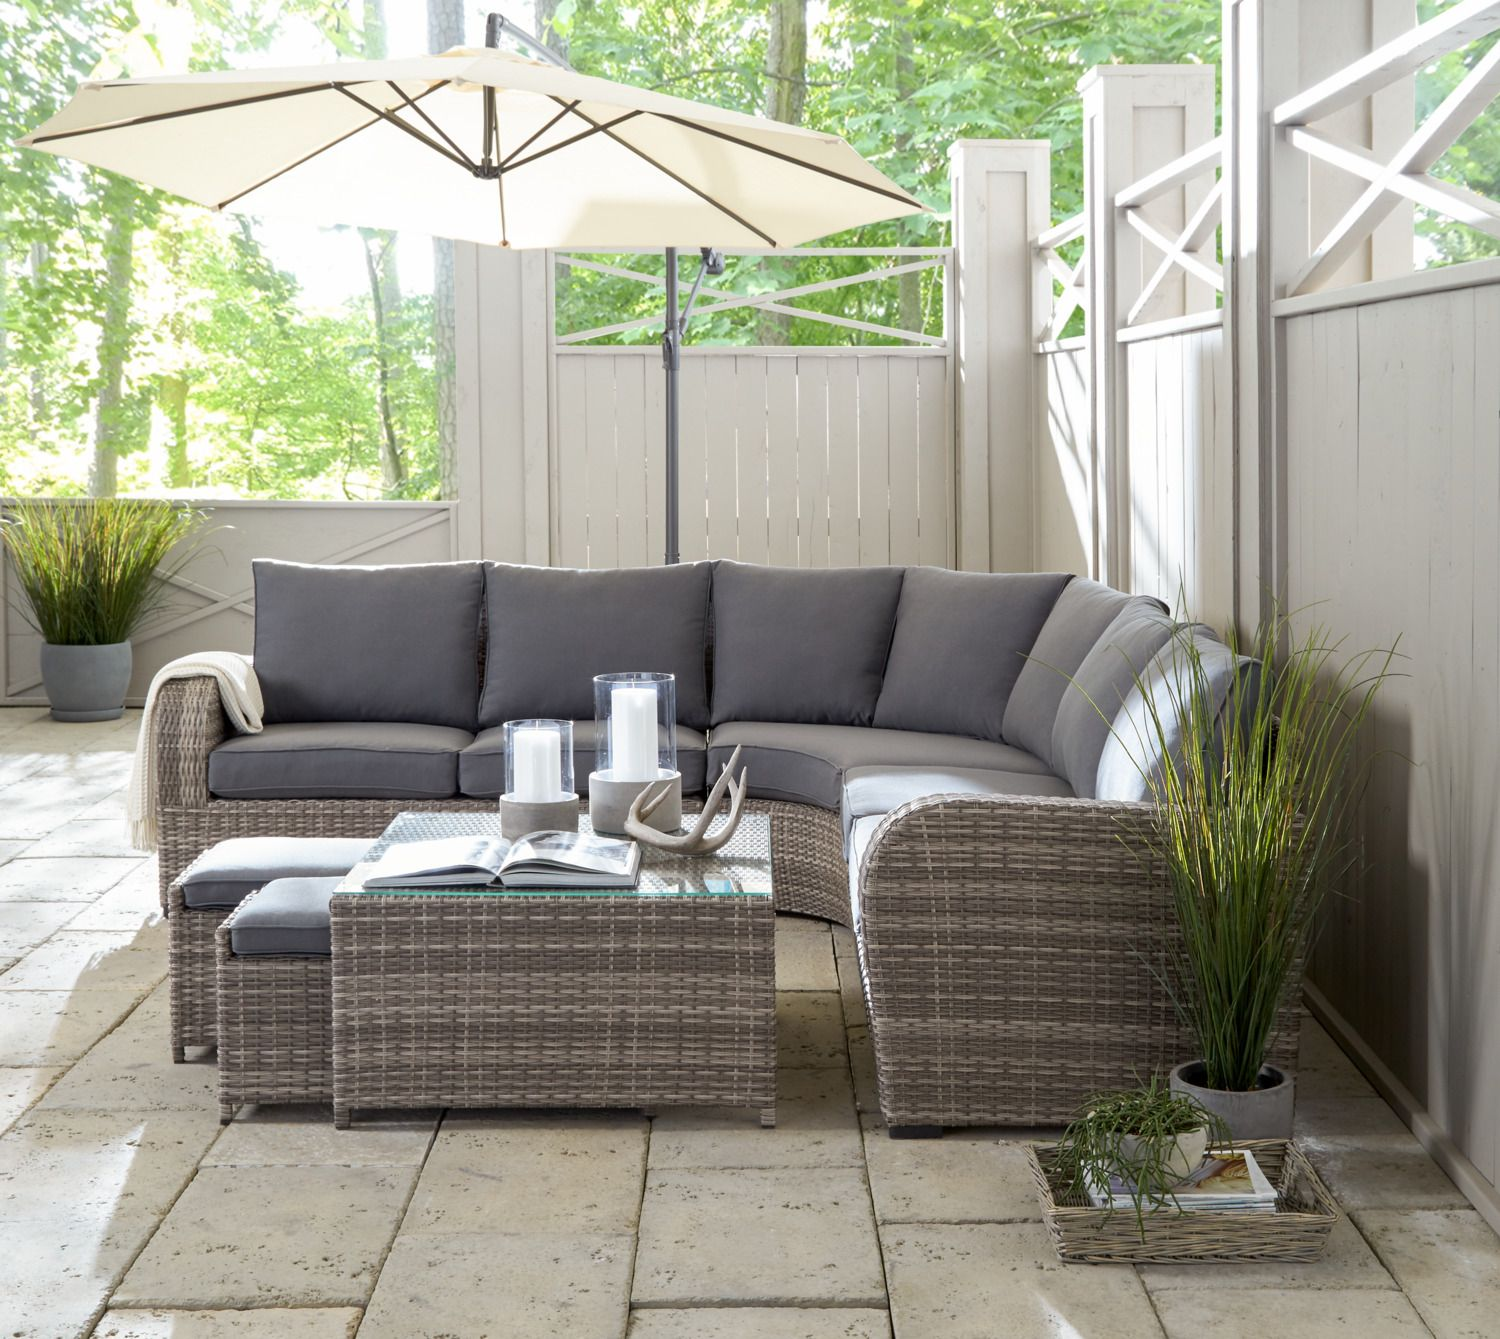 Luxurious Lounging The Melville Outdoor Sectional Was Expertly